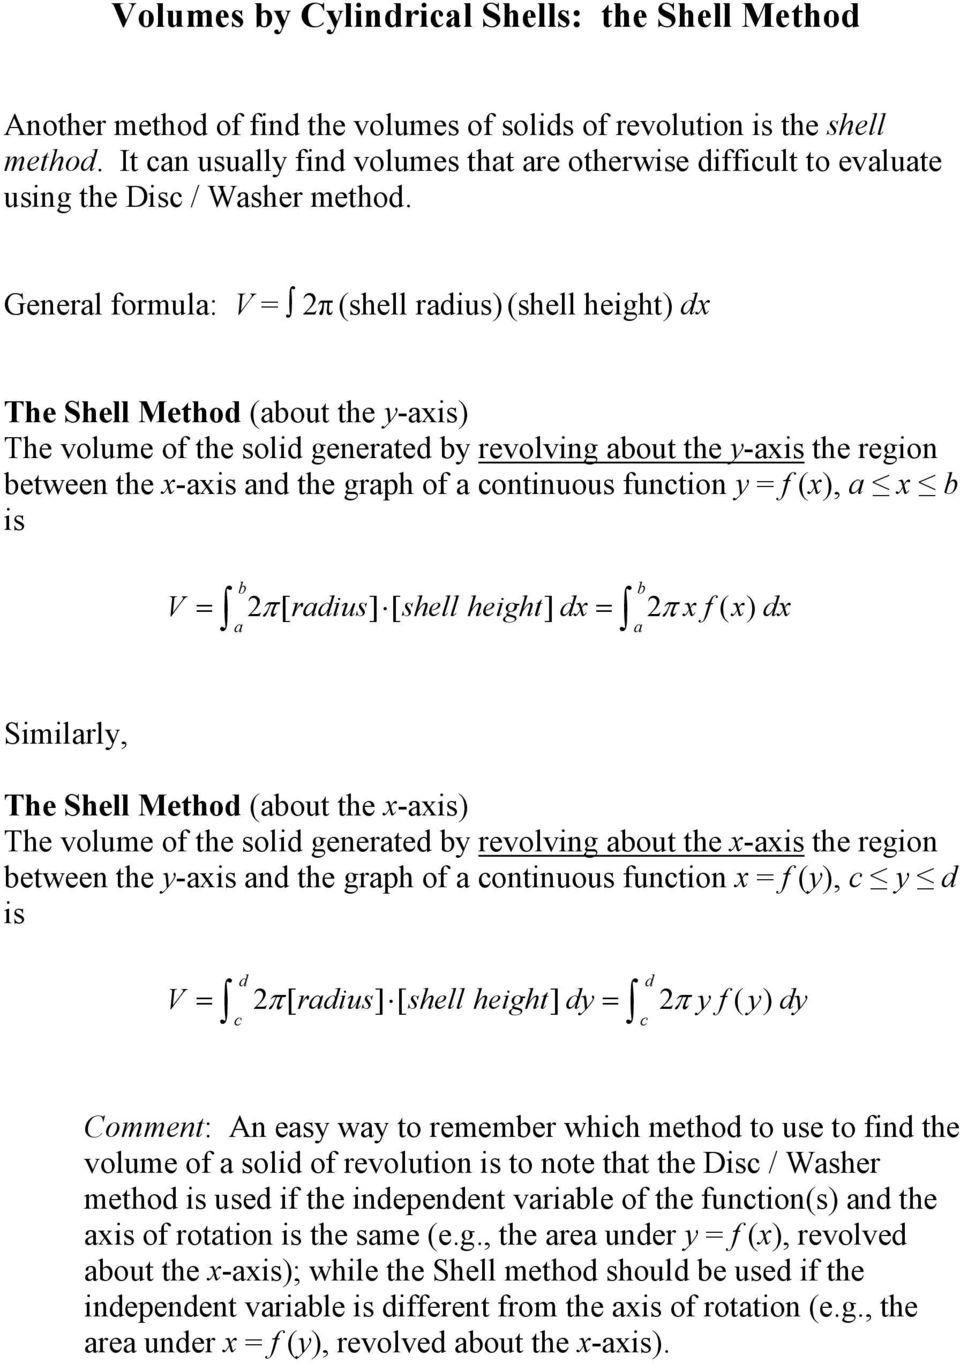 Generl formul: (shell rius (shell height The Shell Metho (out the -is The volume of the soli generte revolving out the -is the region etween the -is n the grph of ontinuous funtion f (, is [ rius] f